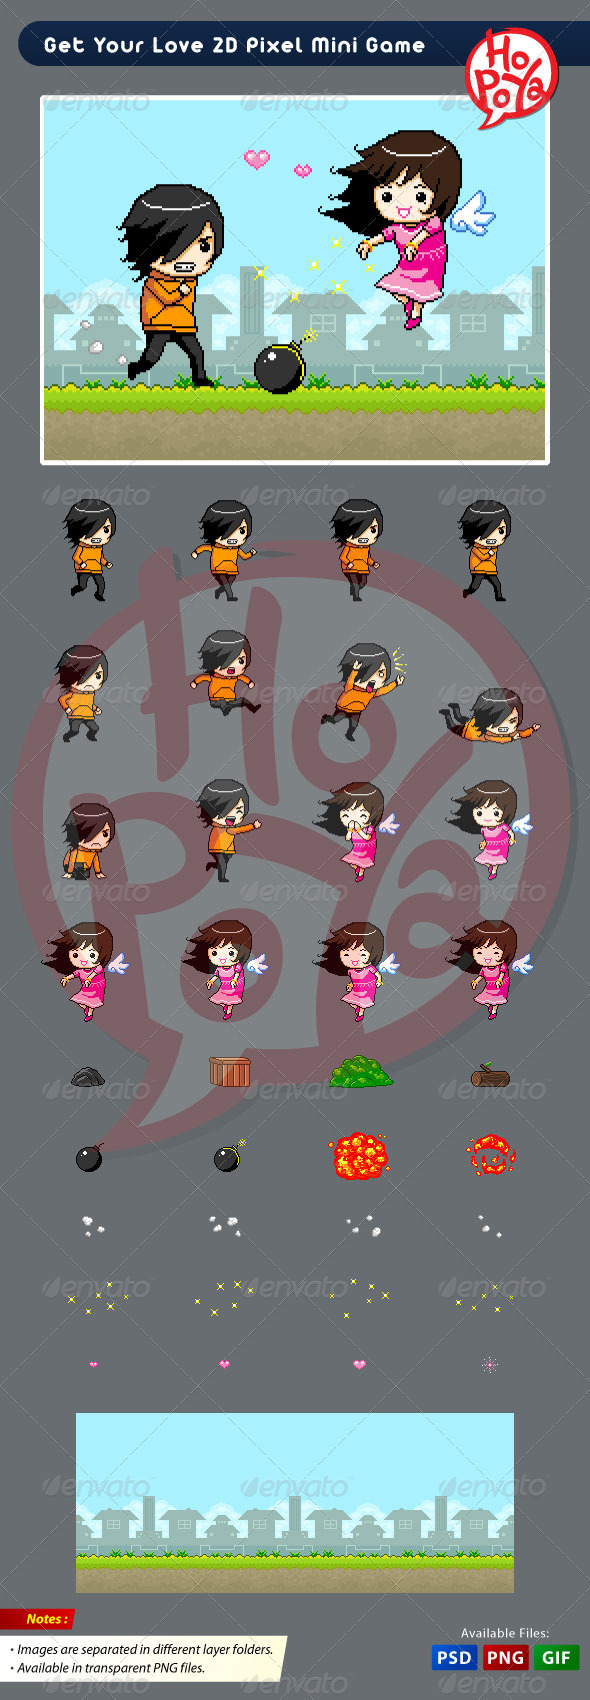 Get Your Love 2D Pixel Mini Game - Illustrations Graphics